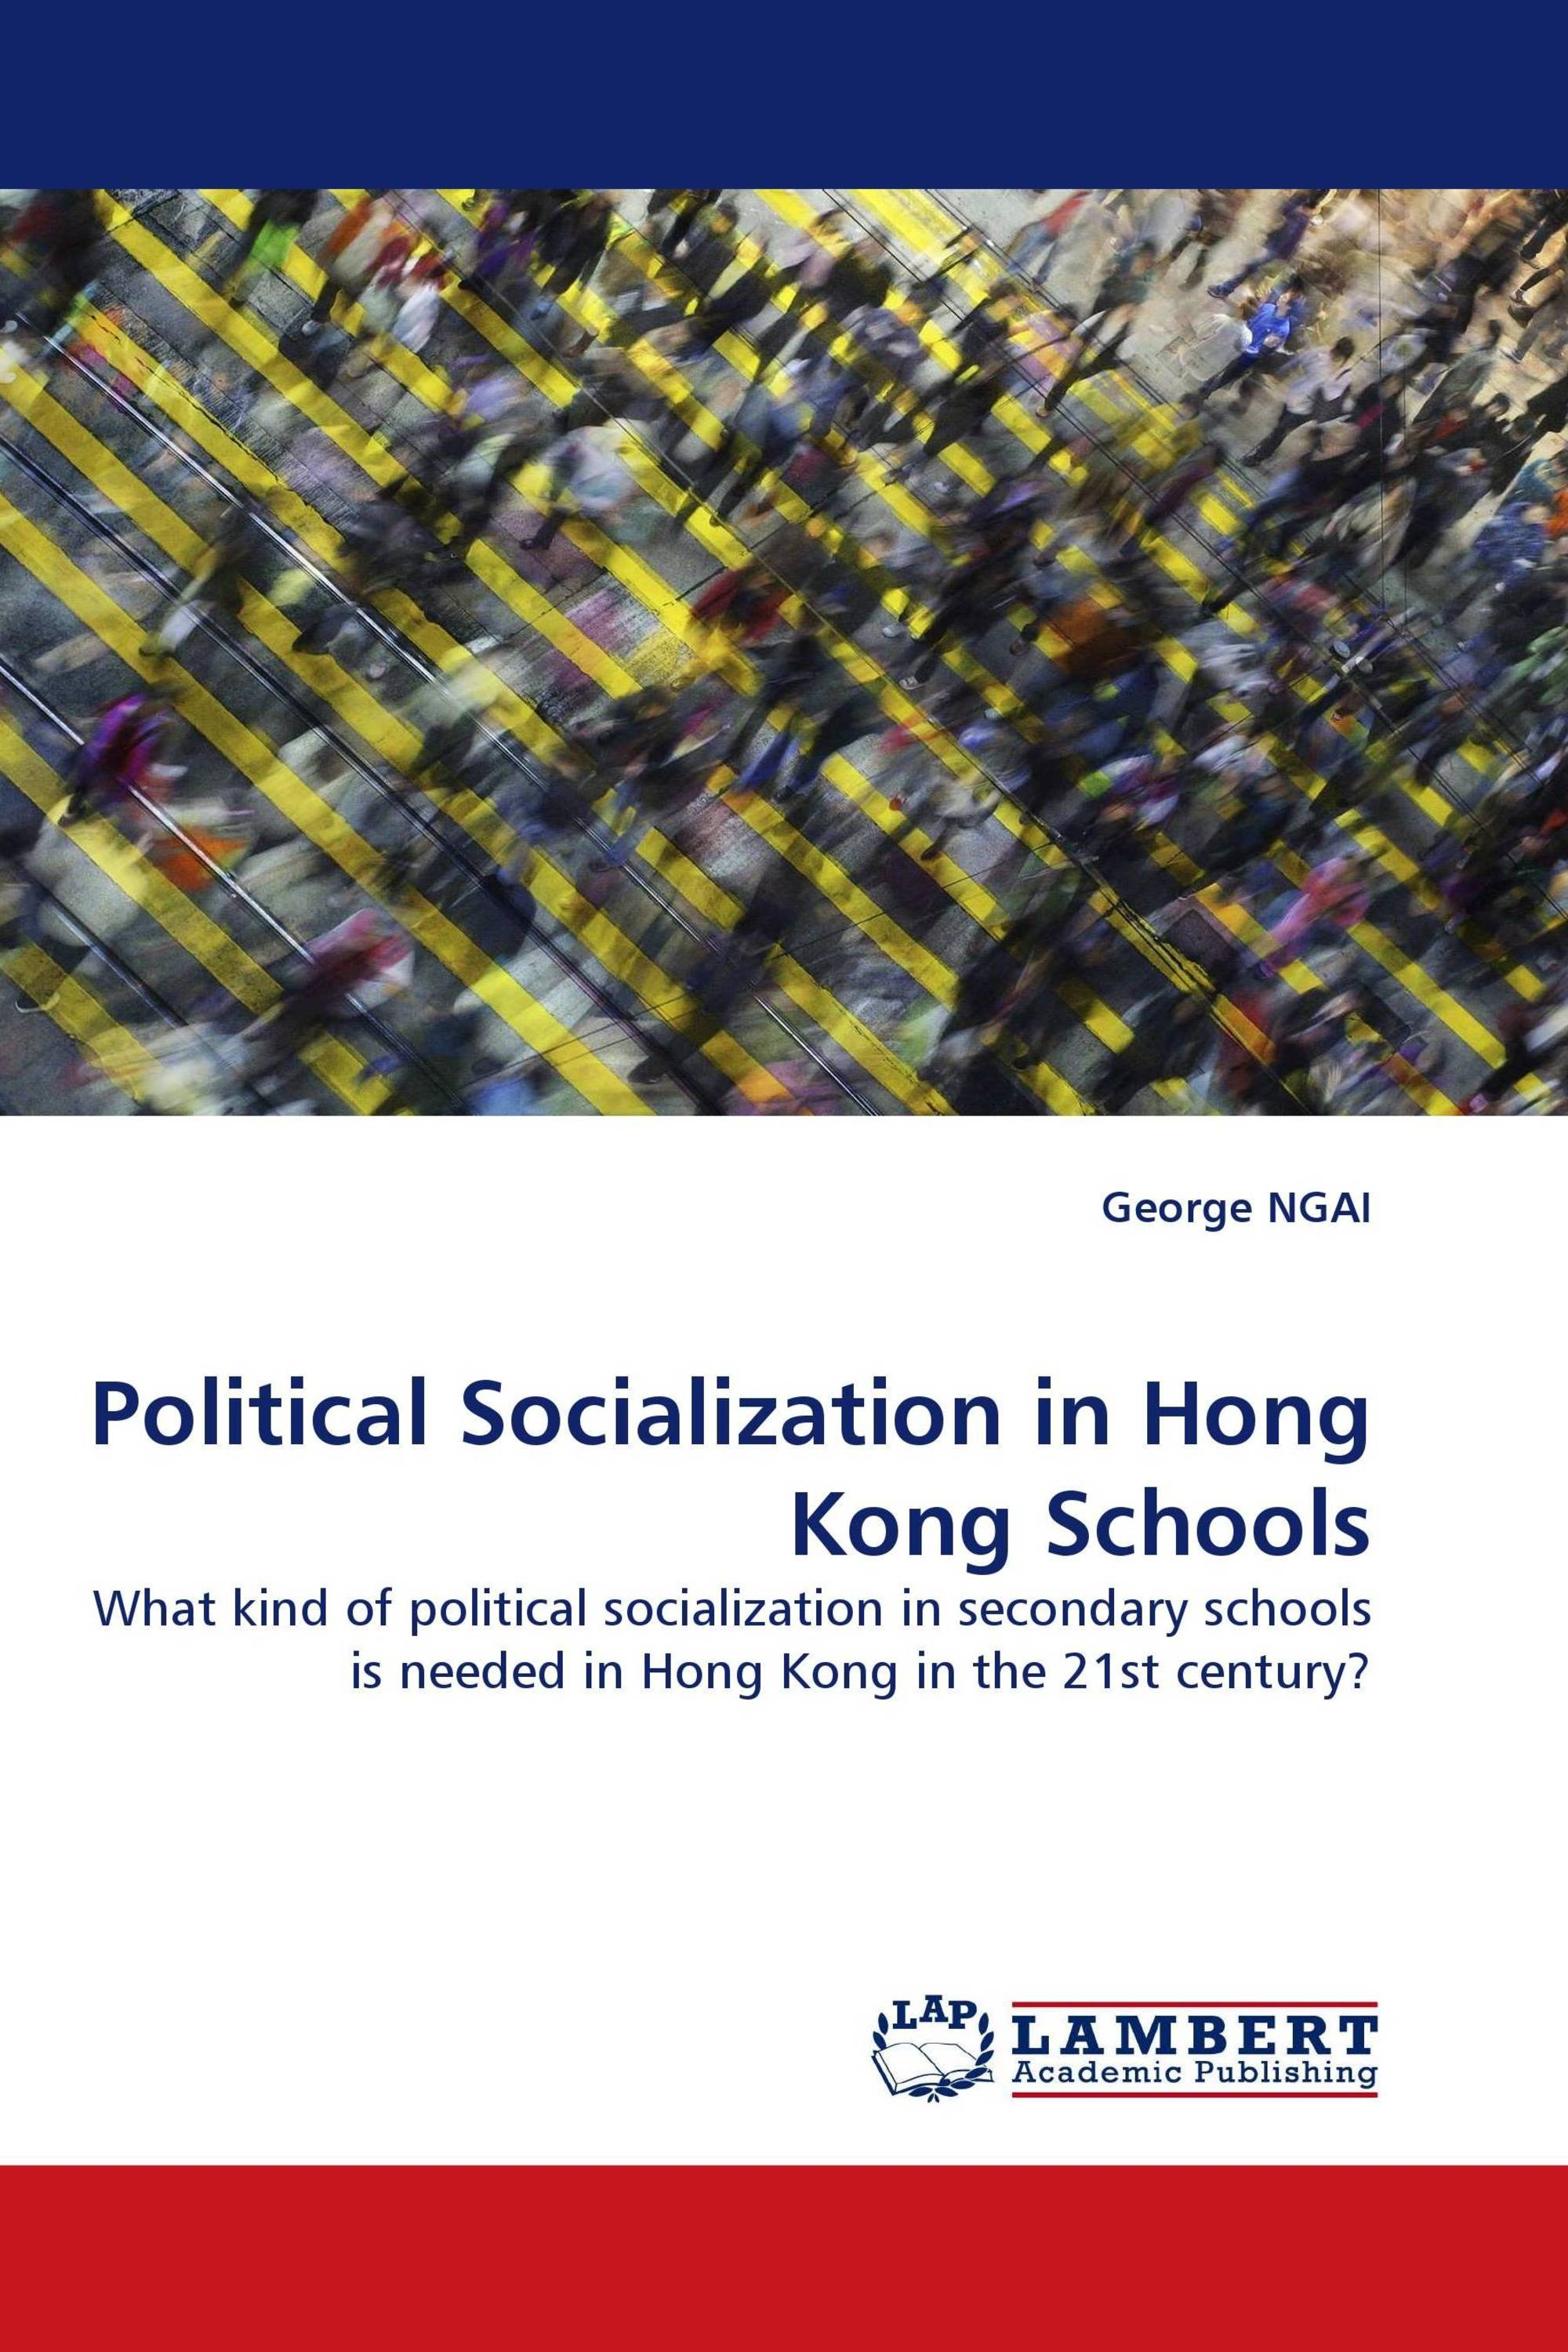 thesis political socialization